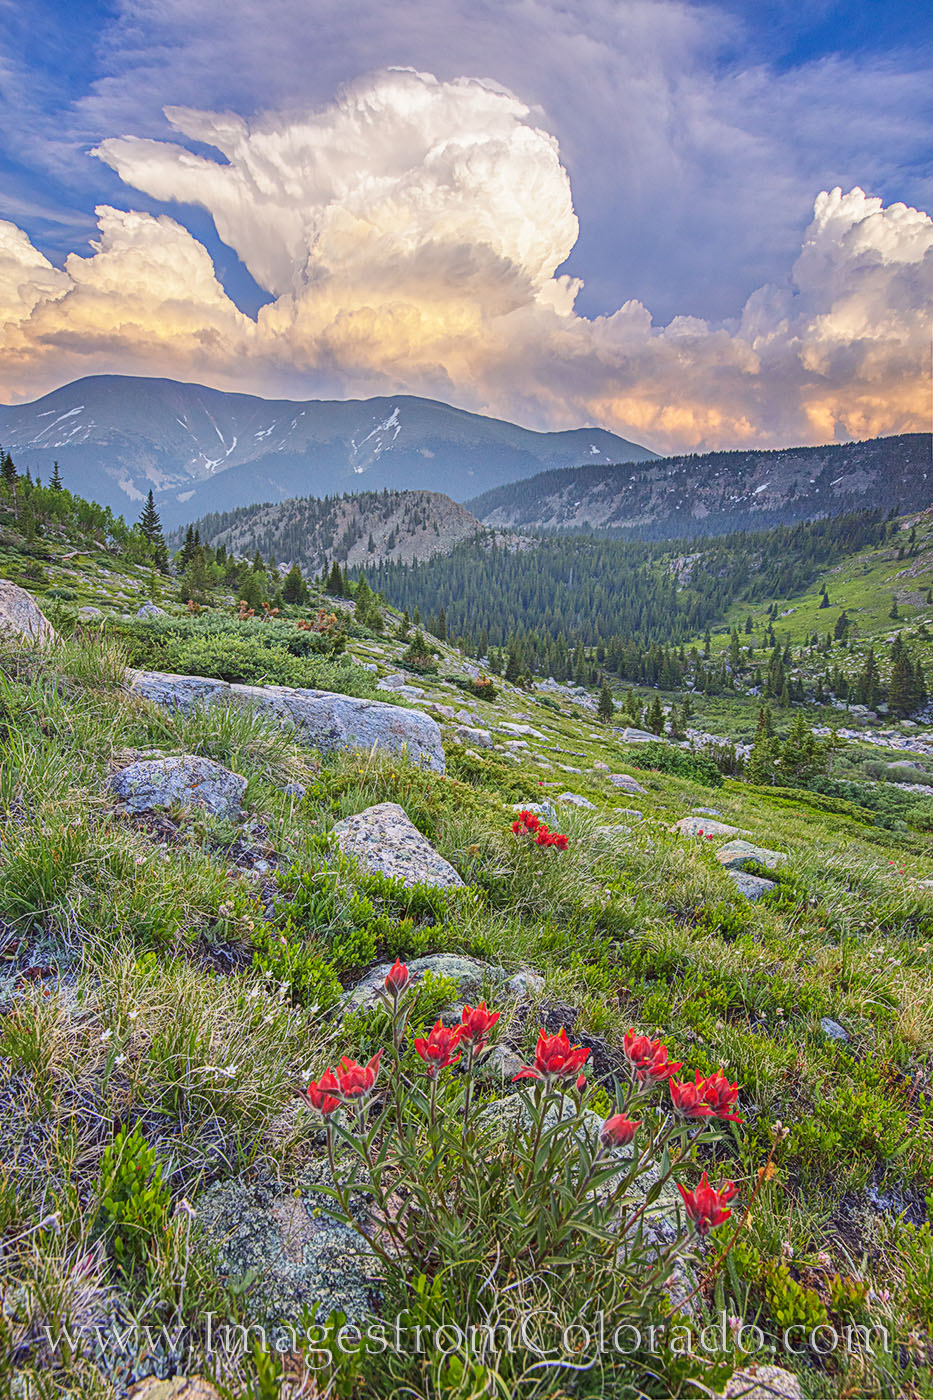 Berthoud Pass, winter park, Colorado wildflowers, storm clouds, second creek, summer, Colorado landscapes, winter park prints, wildflower prints, photo